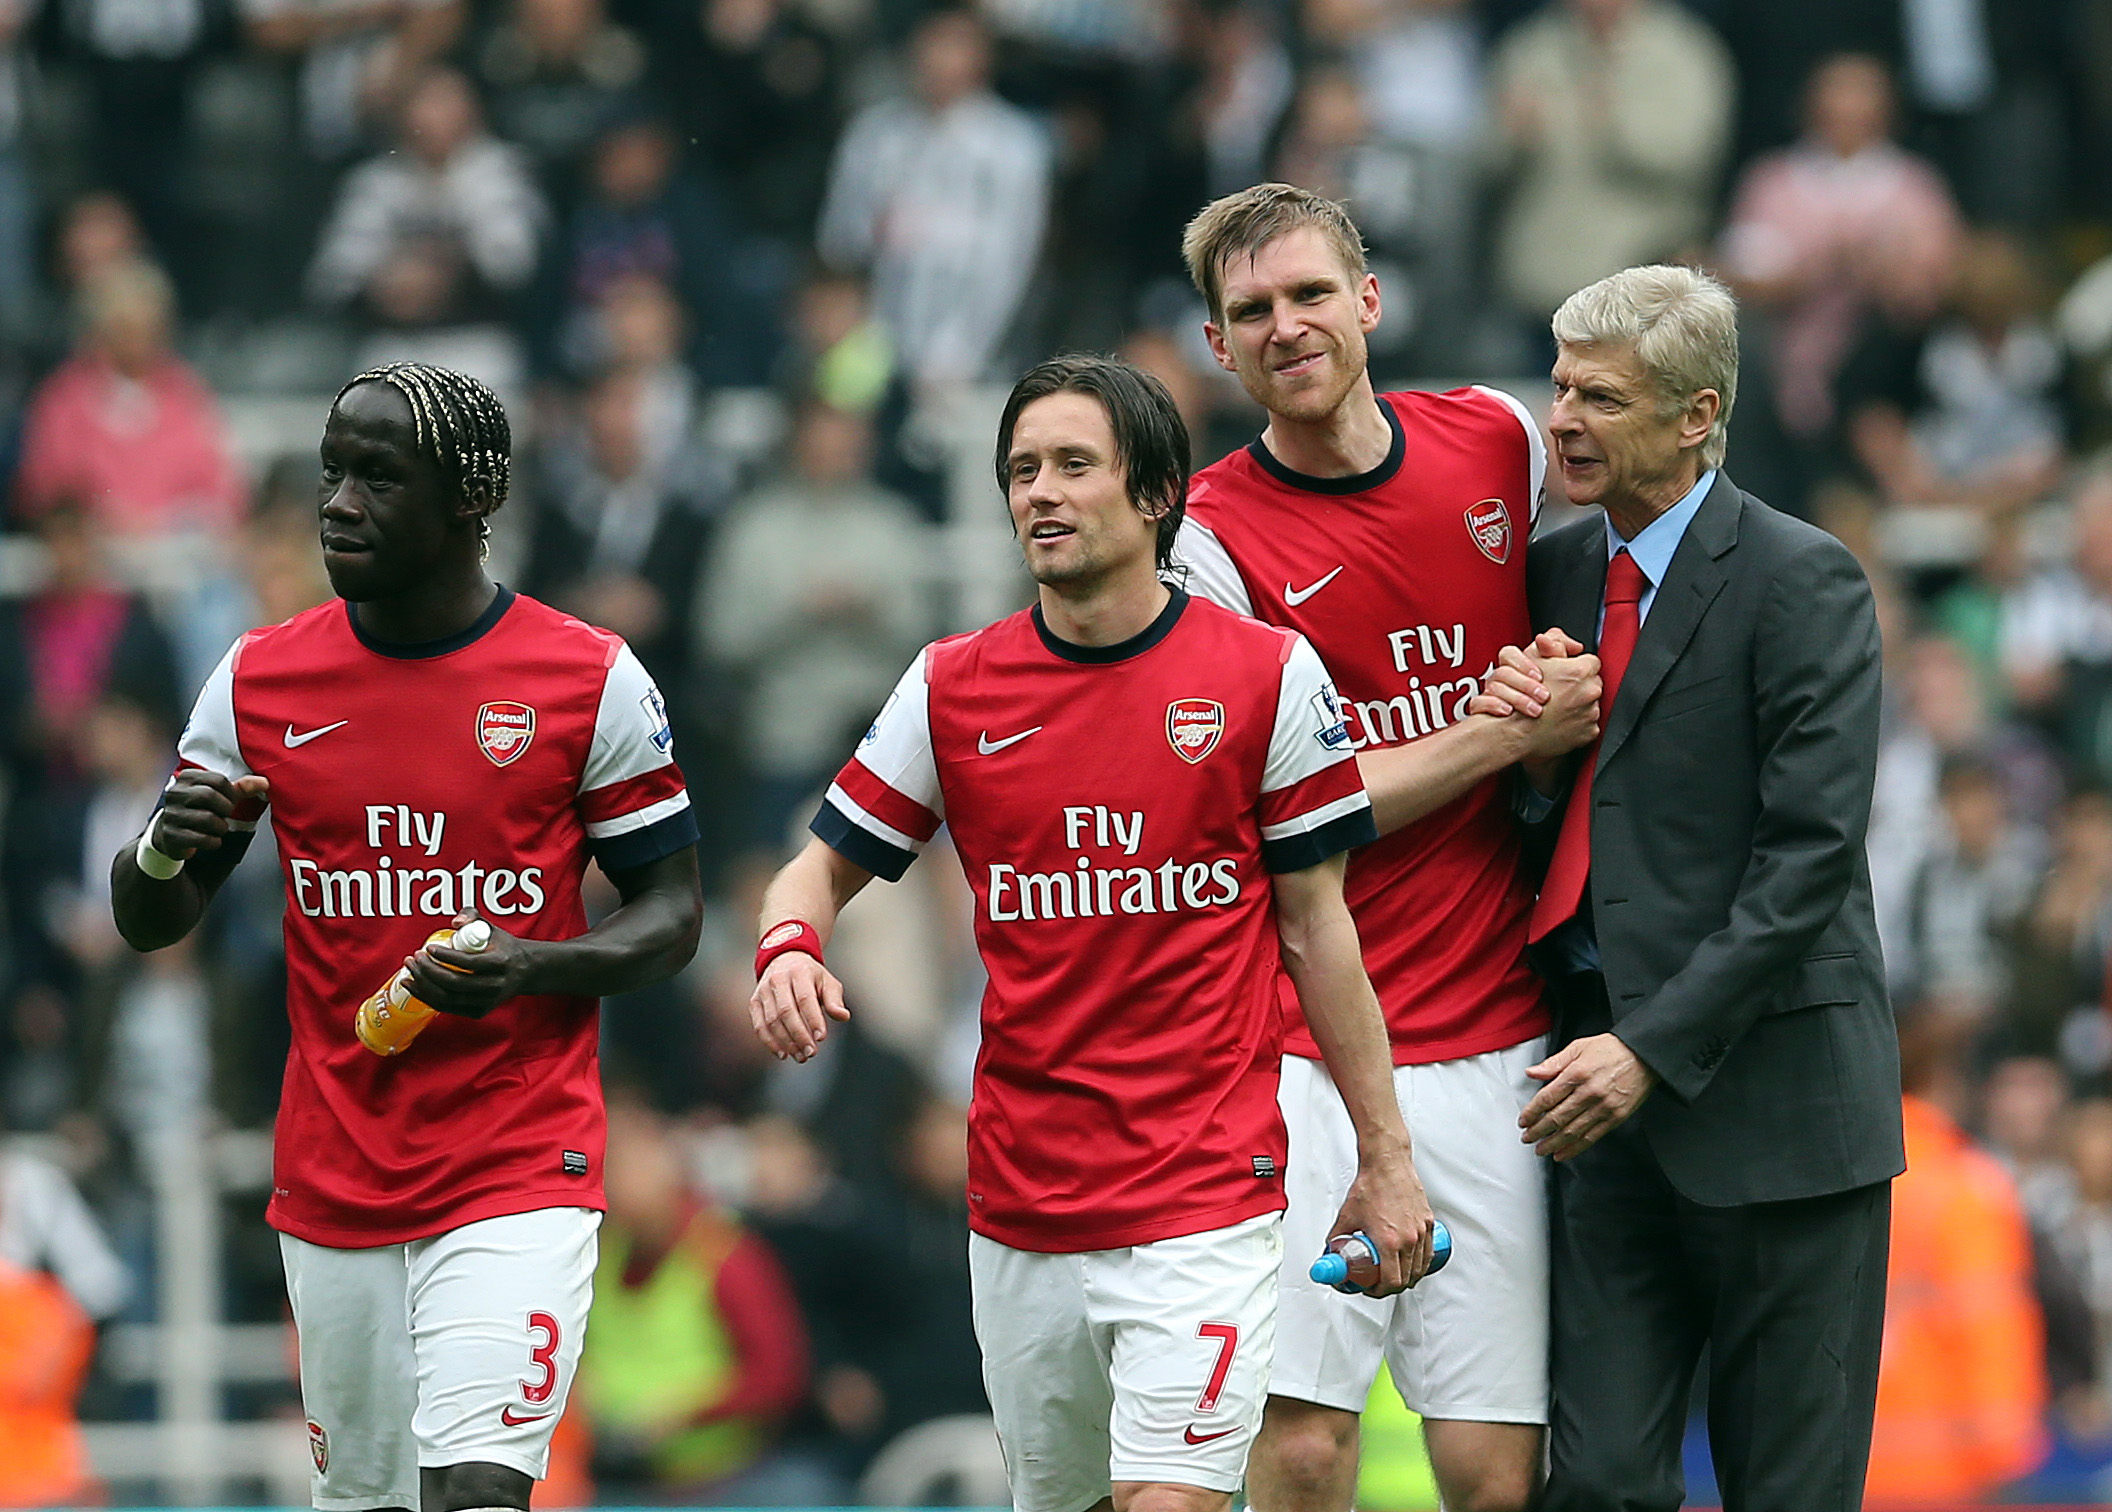 Arsenal hand Per Mertesacker, Tomas Rosicky and Aaron Ramsey new contracts – but Bacary Sagna looks set for summer transfer